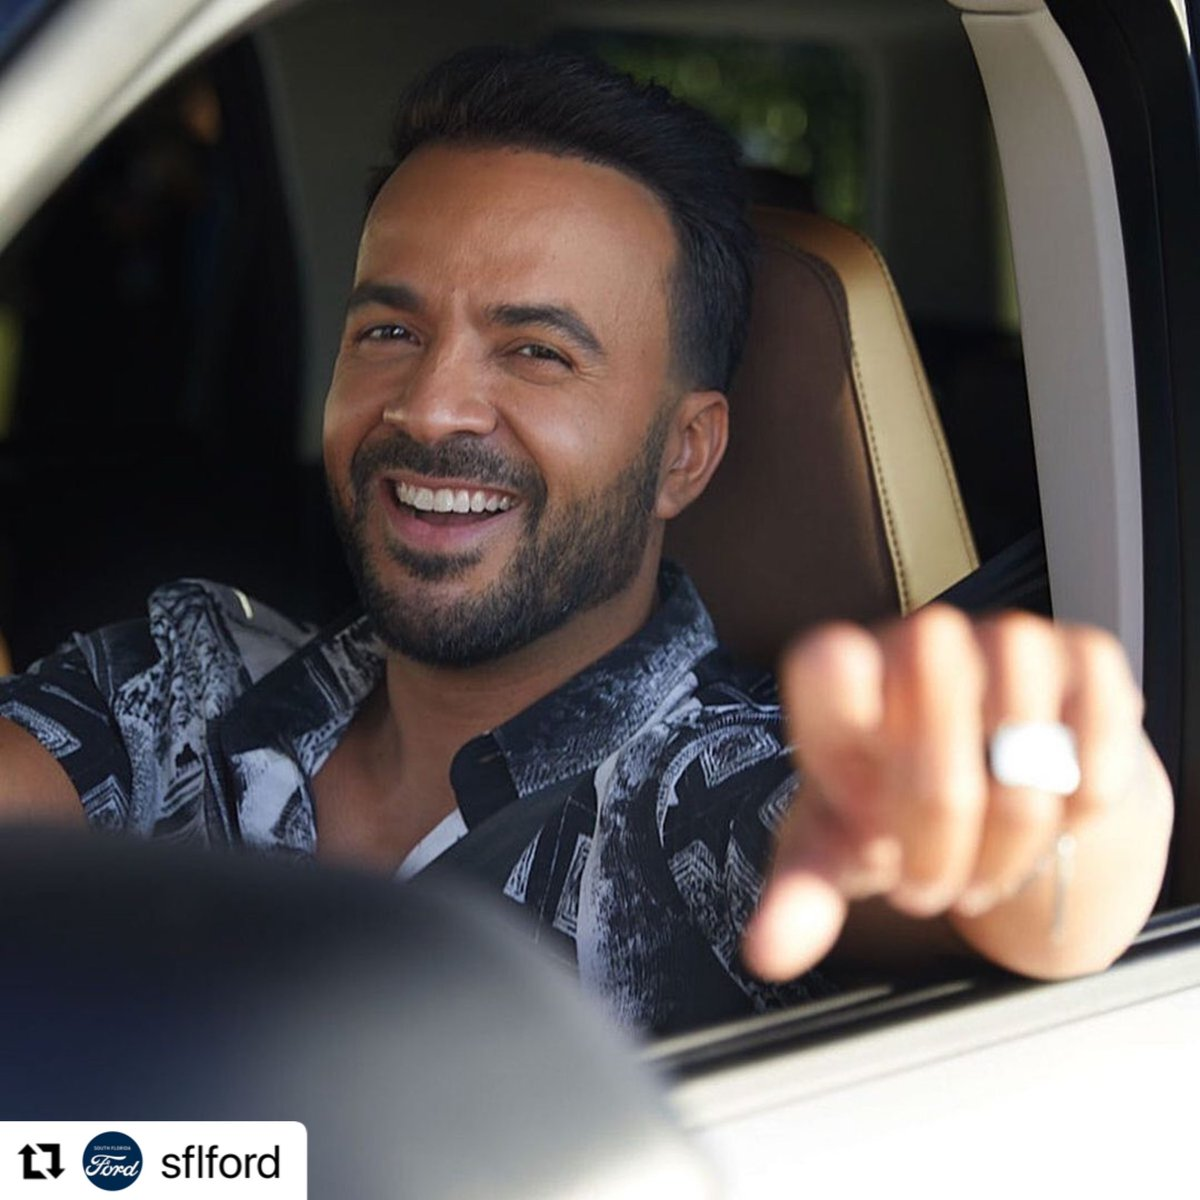 #Repost @sflford with @make_repost ・・・ We see you Luis! 🙏.All of our Ford dealers are very excited you're part of the Ford family in South Florida! ¡Bienvenido a la familia! ..#SouthFloridaFord #Ford #FordExplorer #Photography #Portrait #CarPhotography #LuisFonsi #PopSta